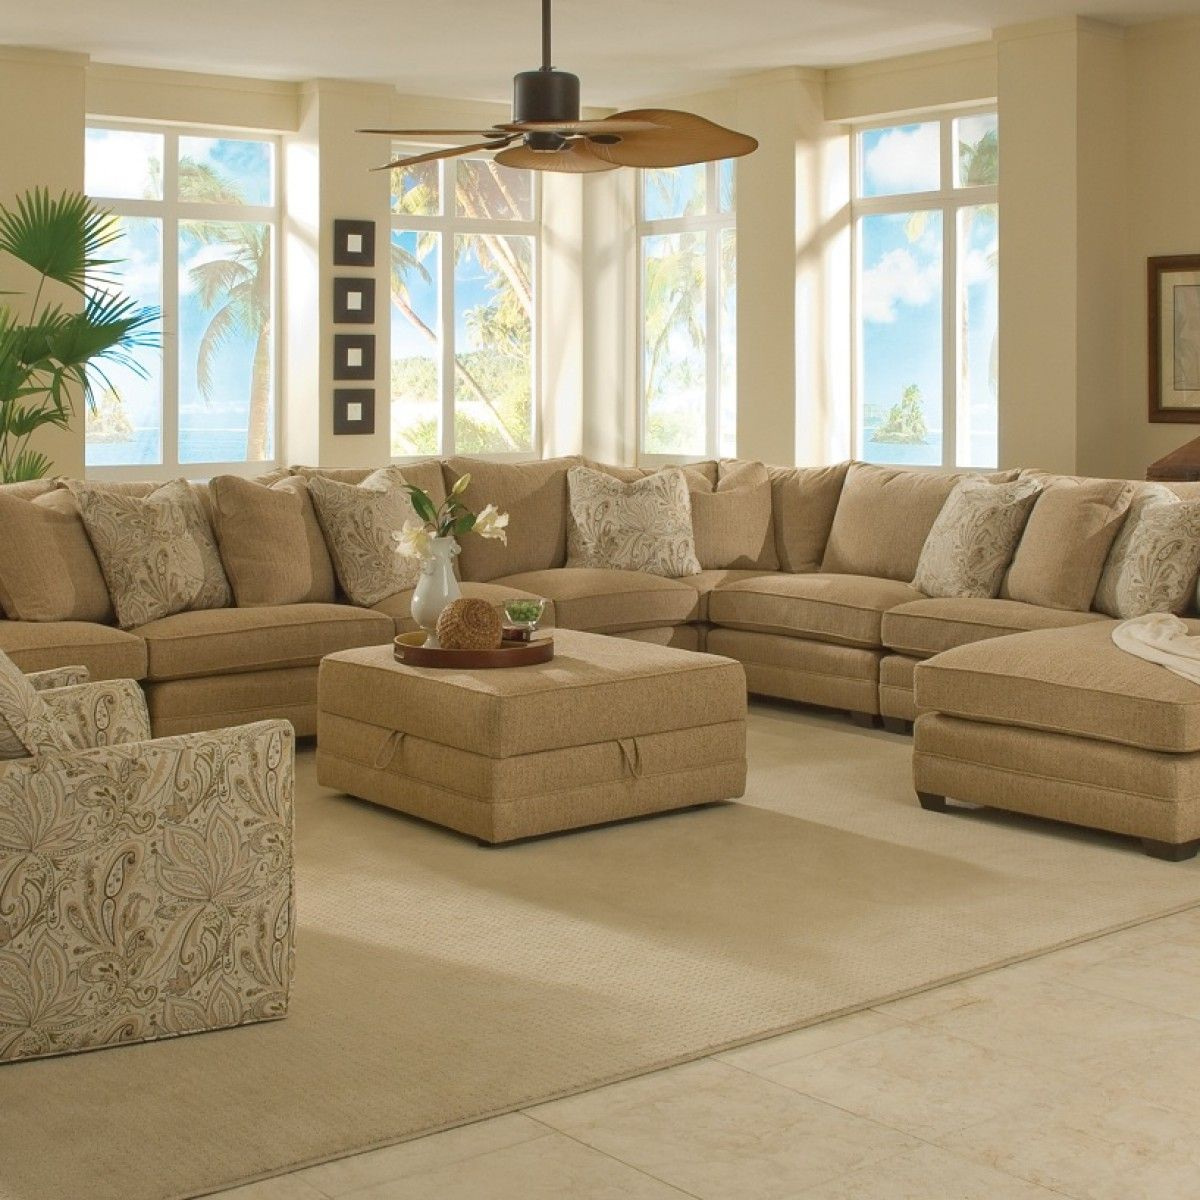 Best Magnificent Large Sectional Sofas Large Sectional Sofa Sectional Sofa With Chaise Sectional 400 x 300